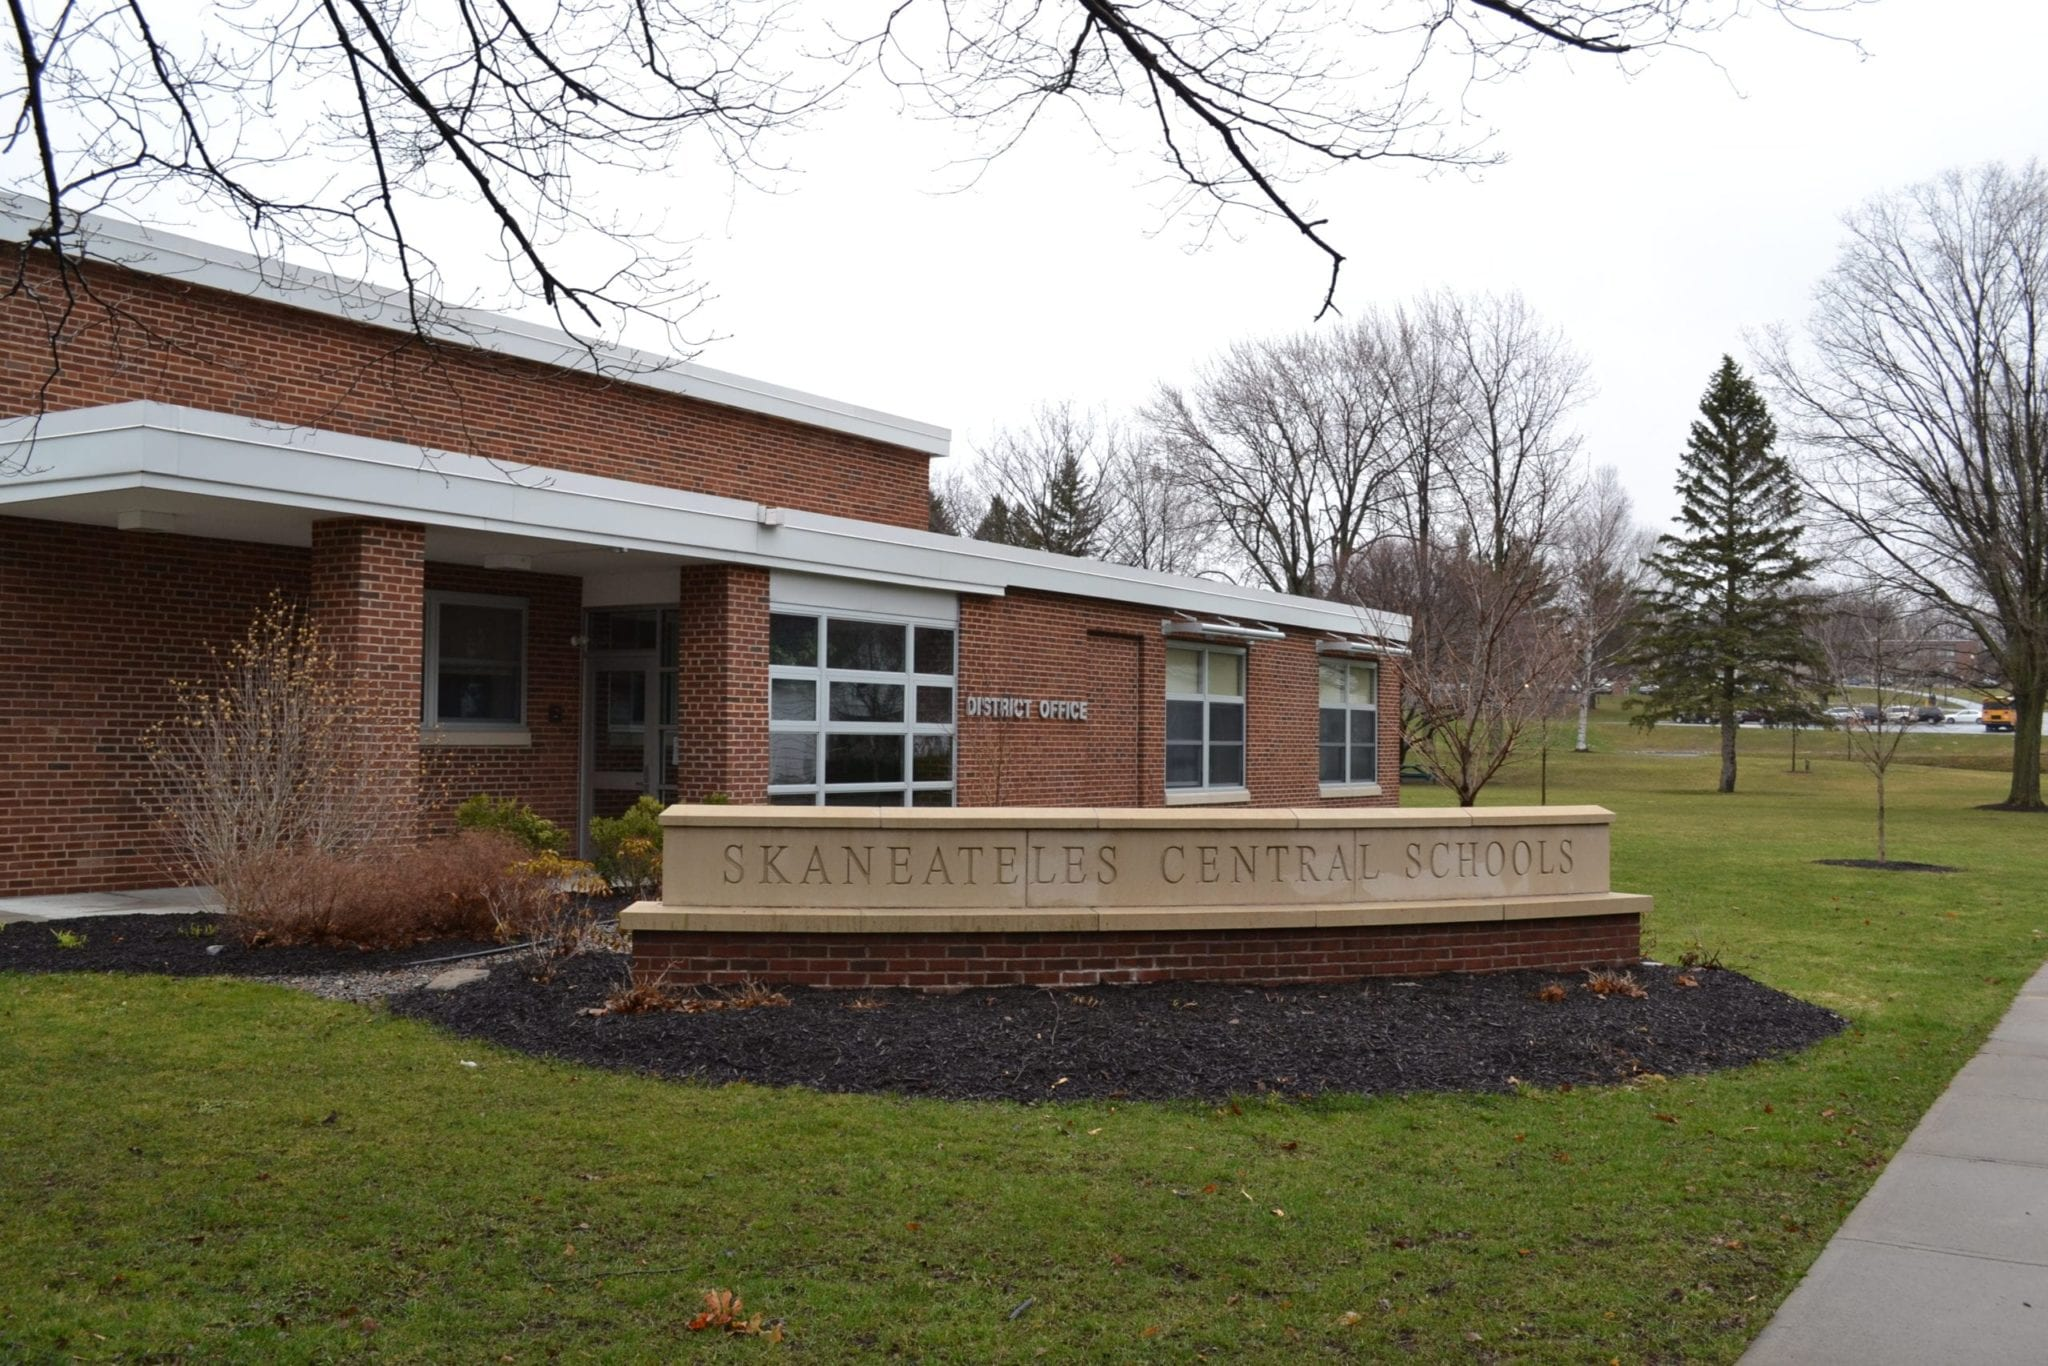 Skaneateles schools to extend Pastel, eliminate principal position